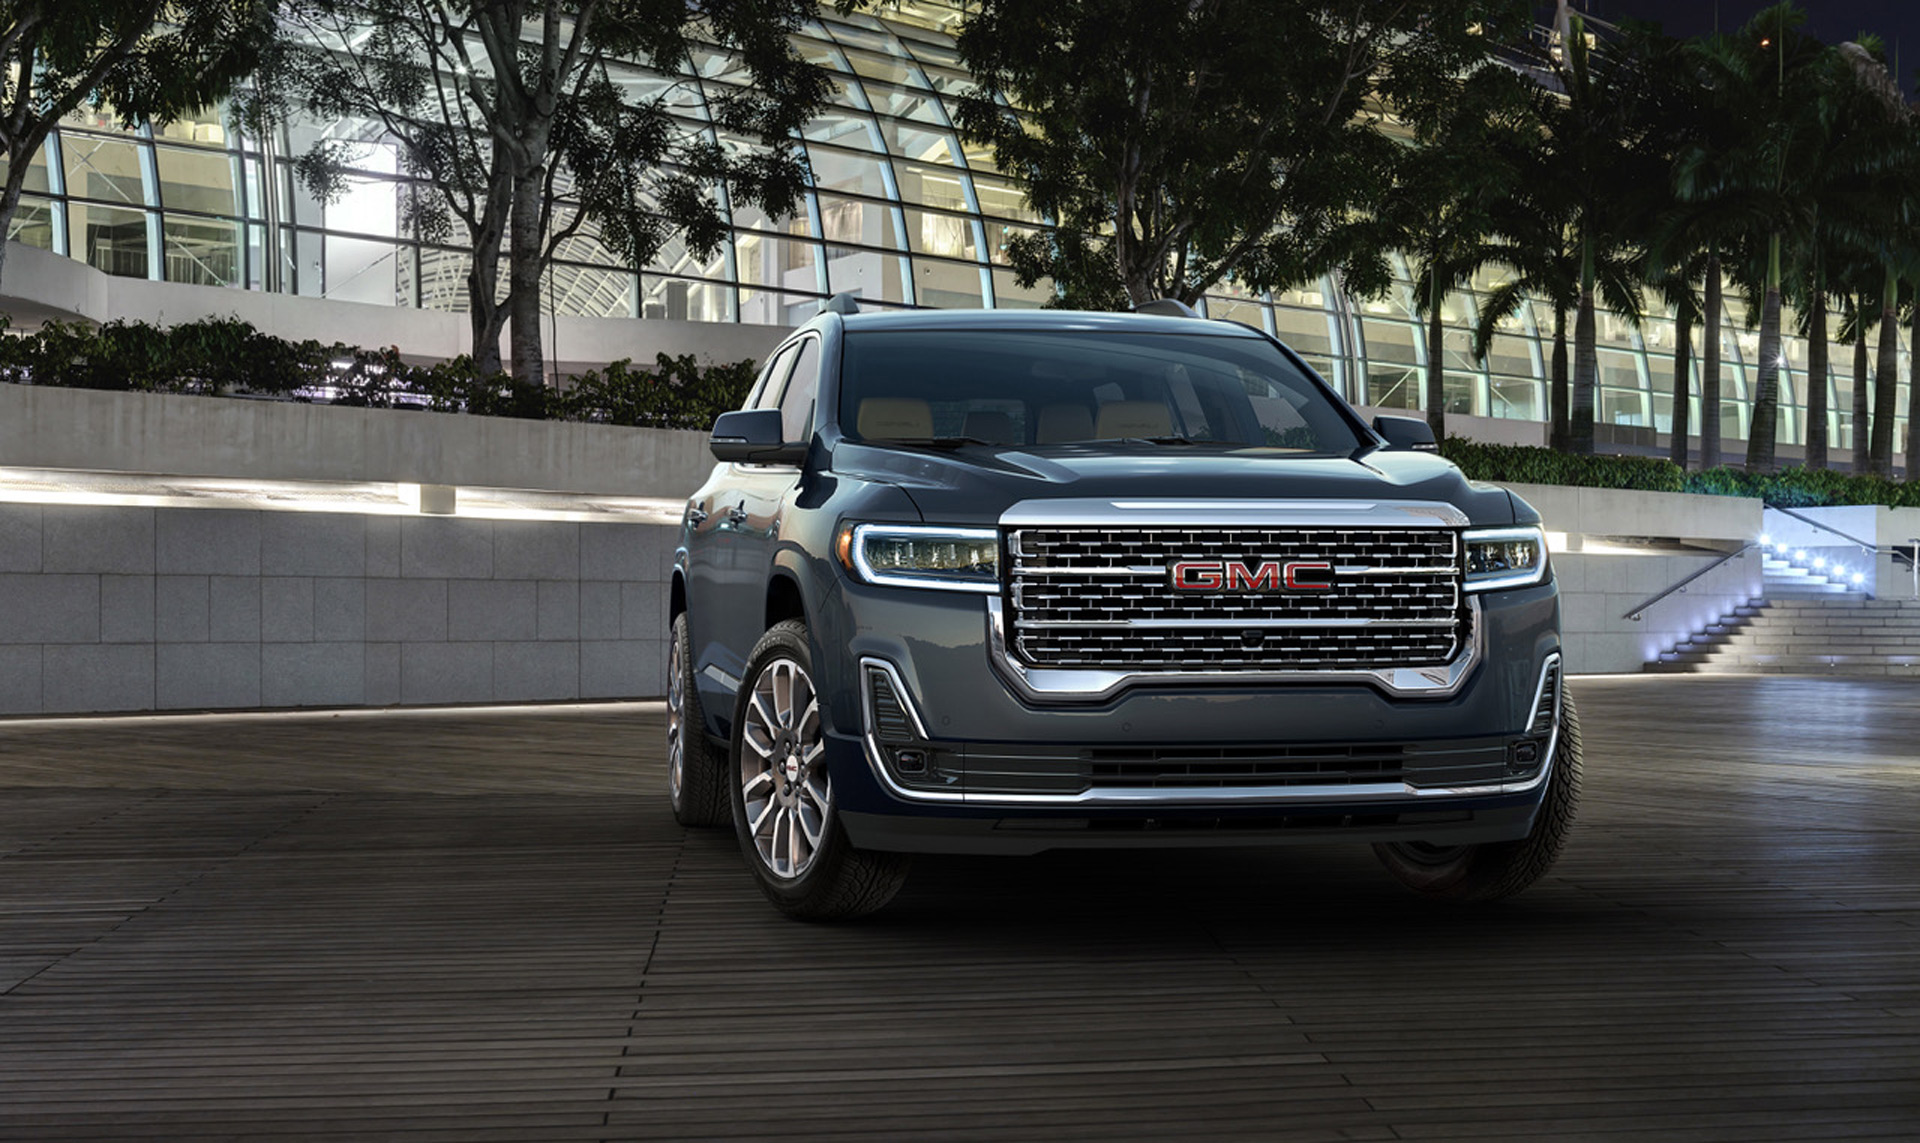 39 Gallery of 2020 Gmc Acadia Mpg Release with 2020 Gmc Acadia Mpg